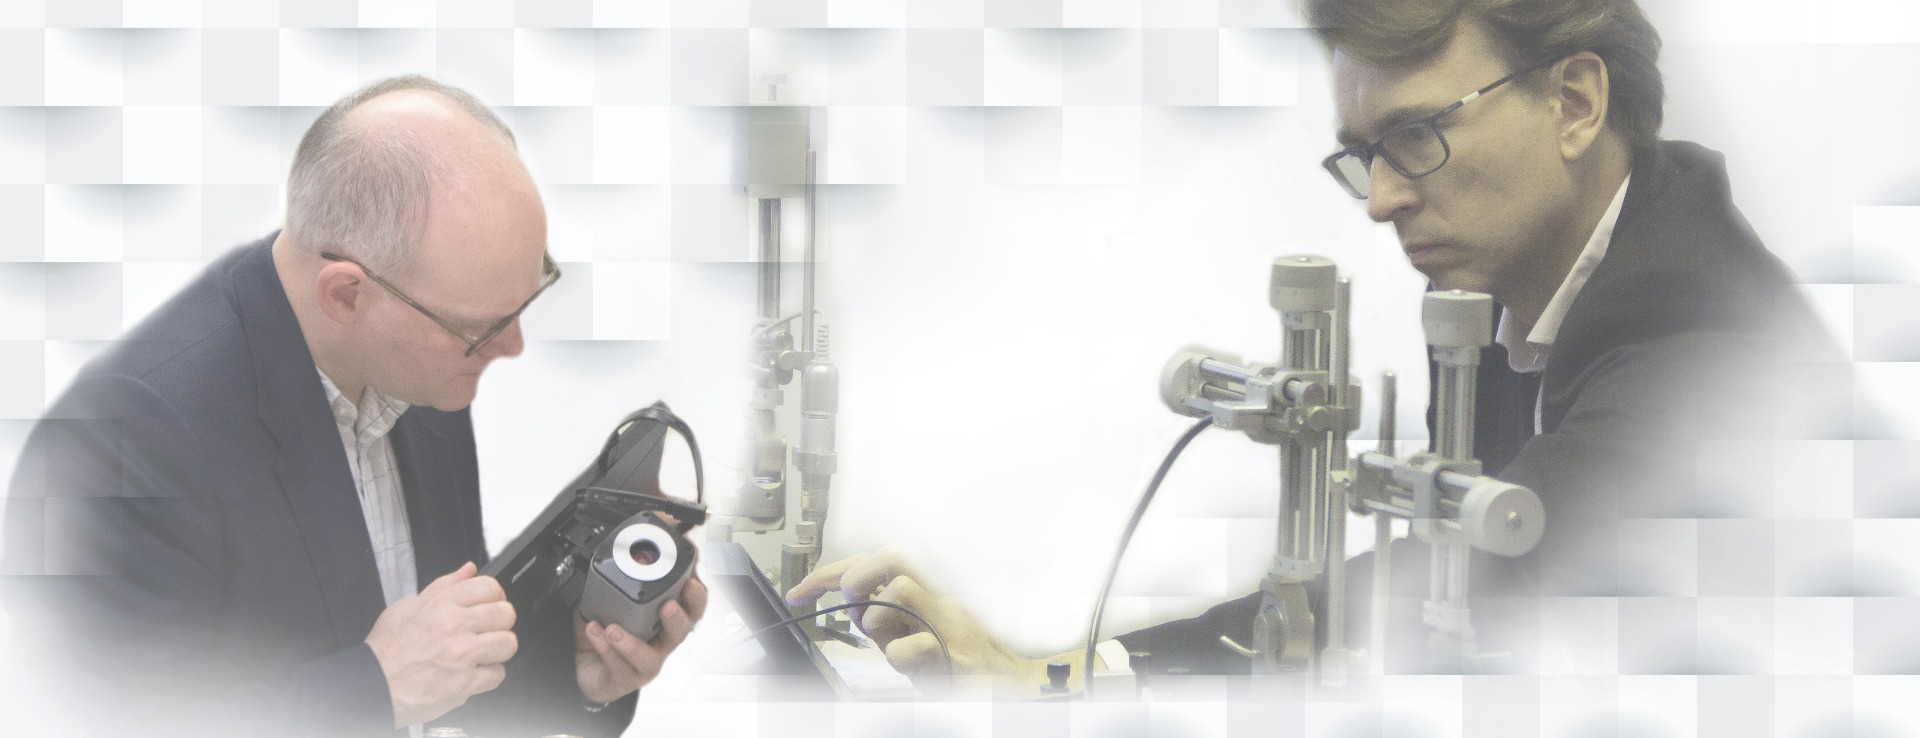 preventative maintenance with cleaning and calibration